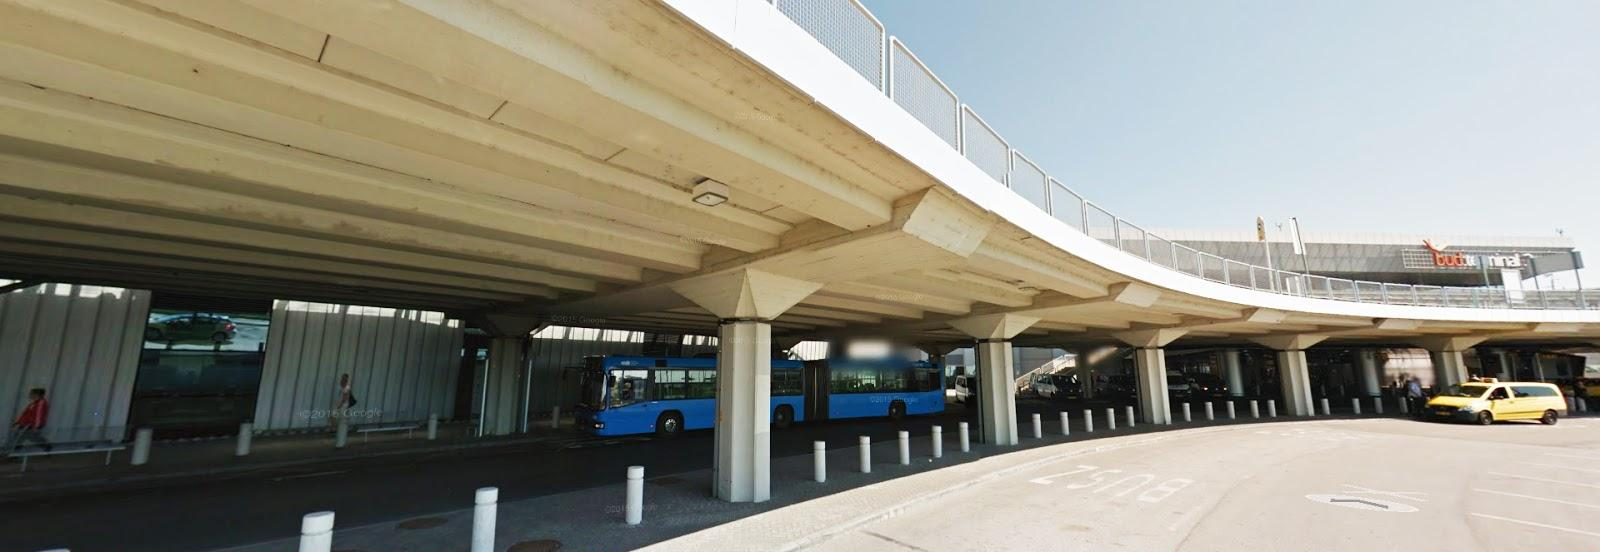 airport bus station.jpg